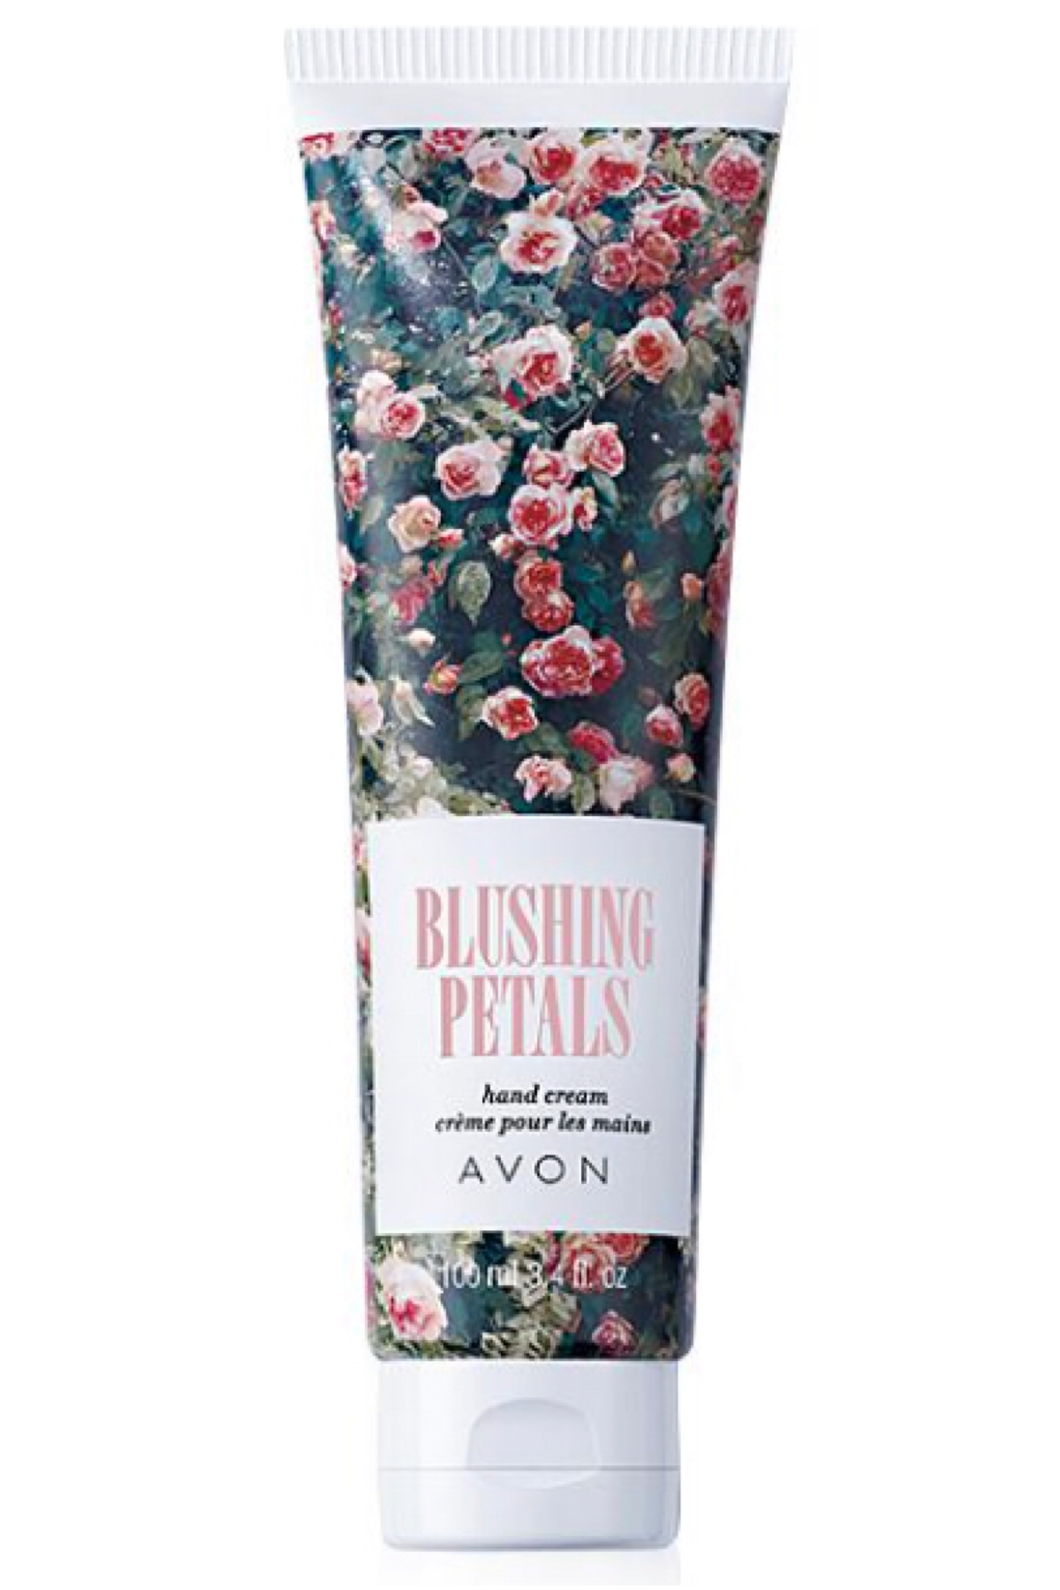 Blushing Petals Hand Cream 100ml Rose Petal, Jasmine and Lily of the Valley